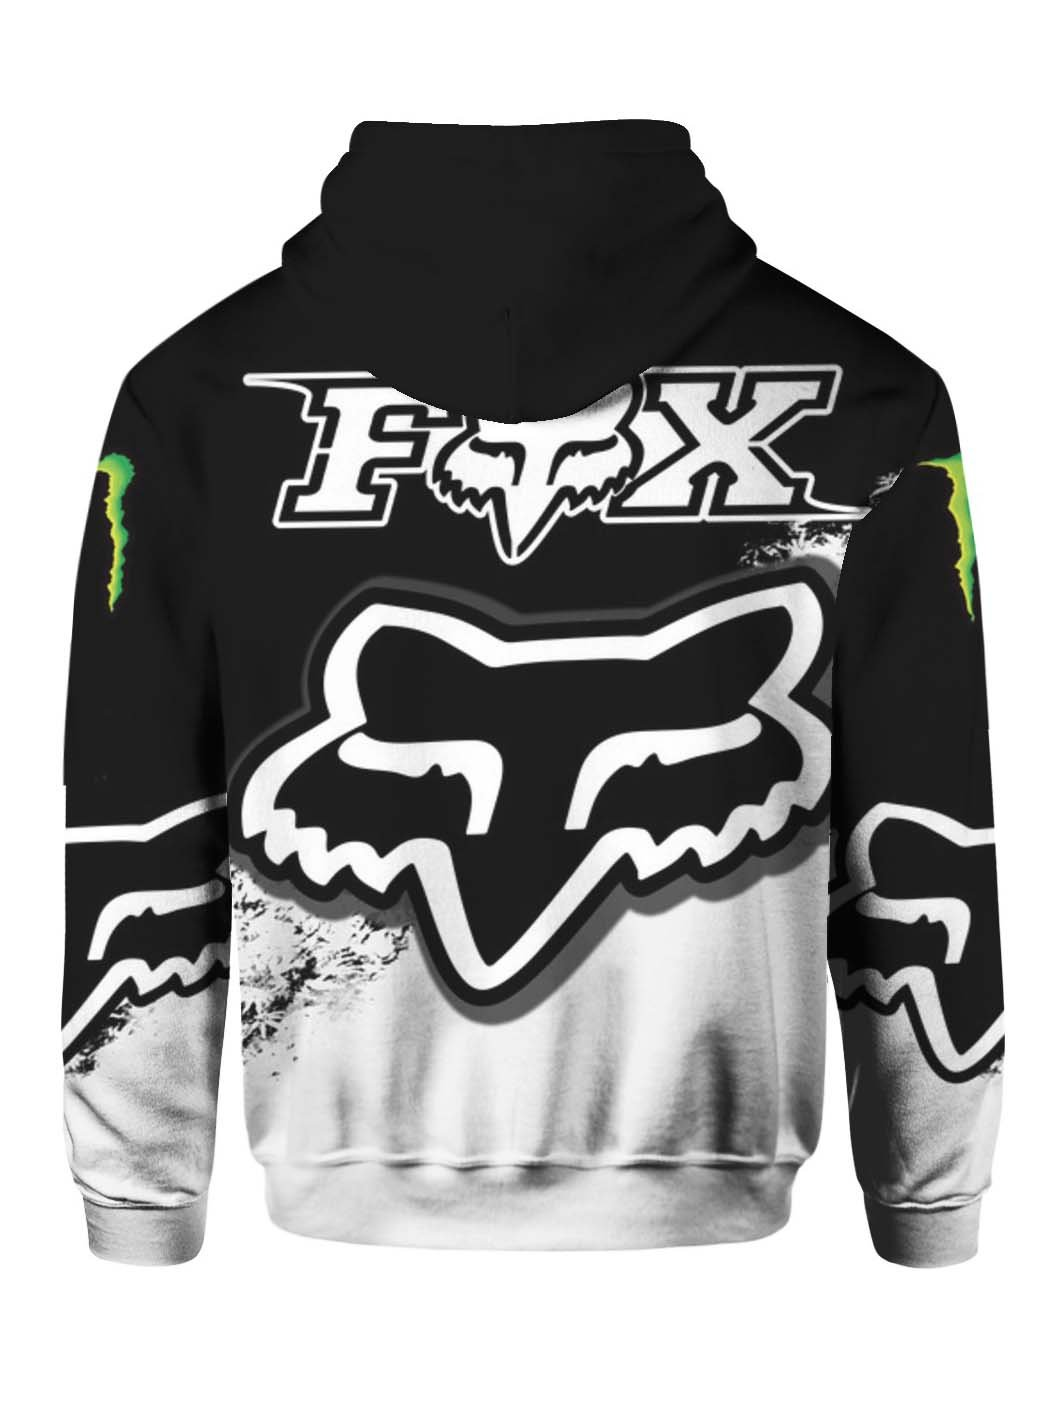 monster energy green and fox racing full over printed shirt 2